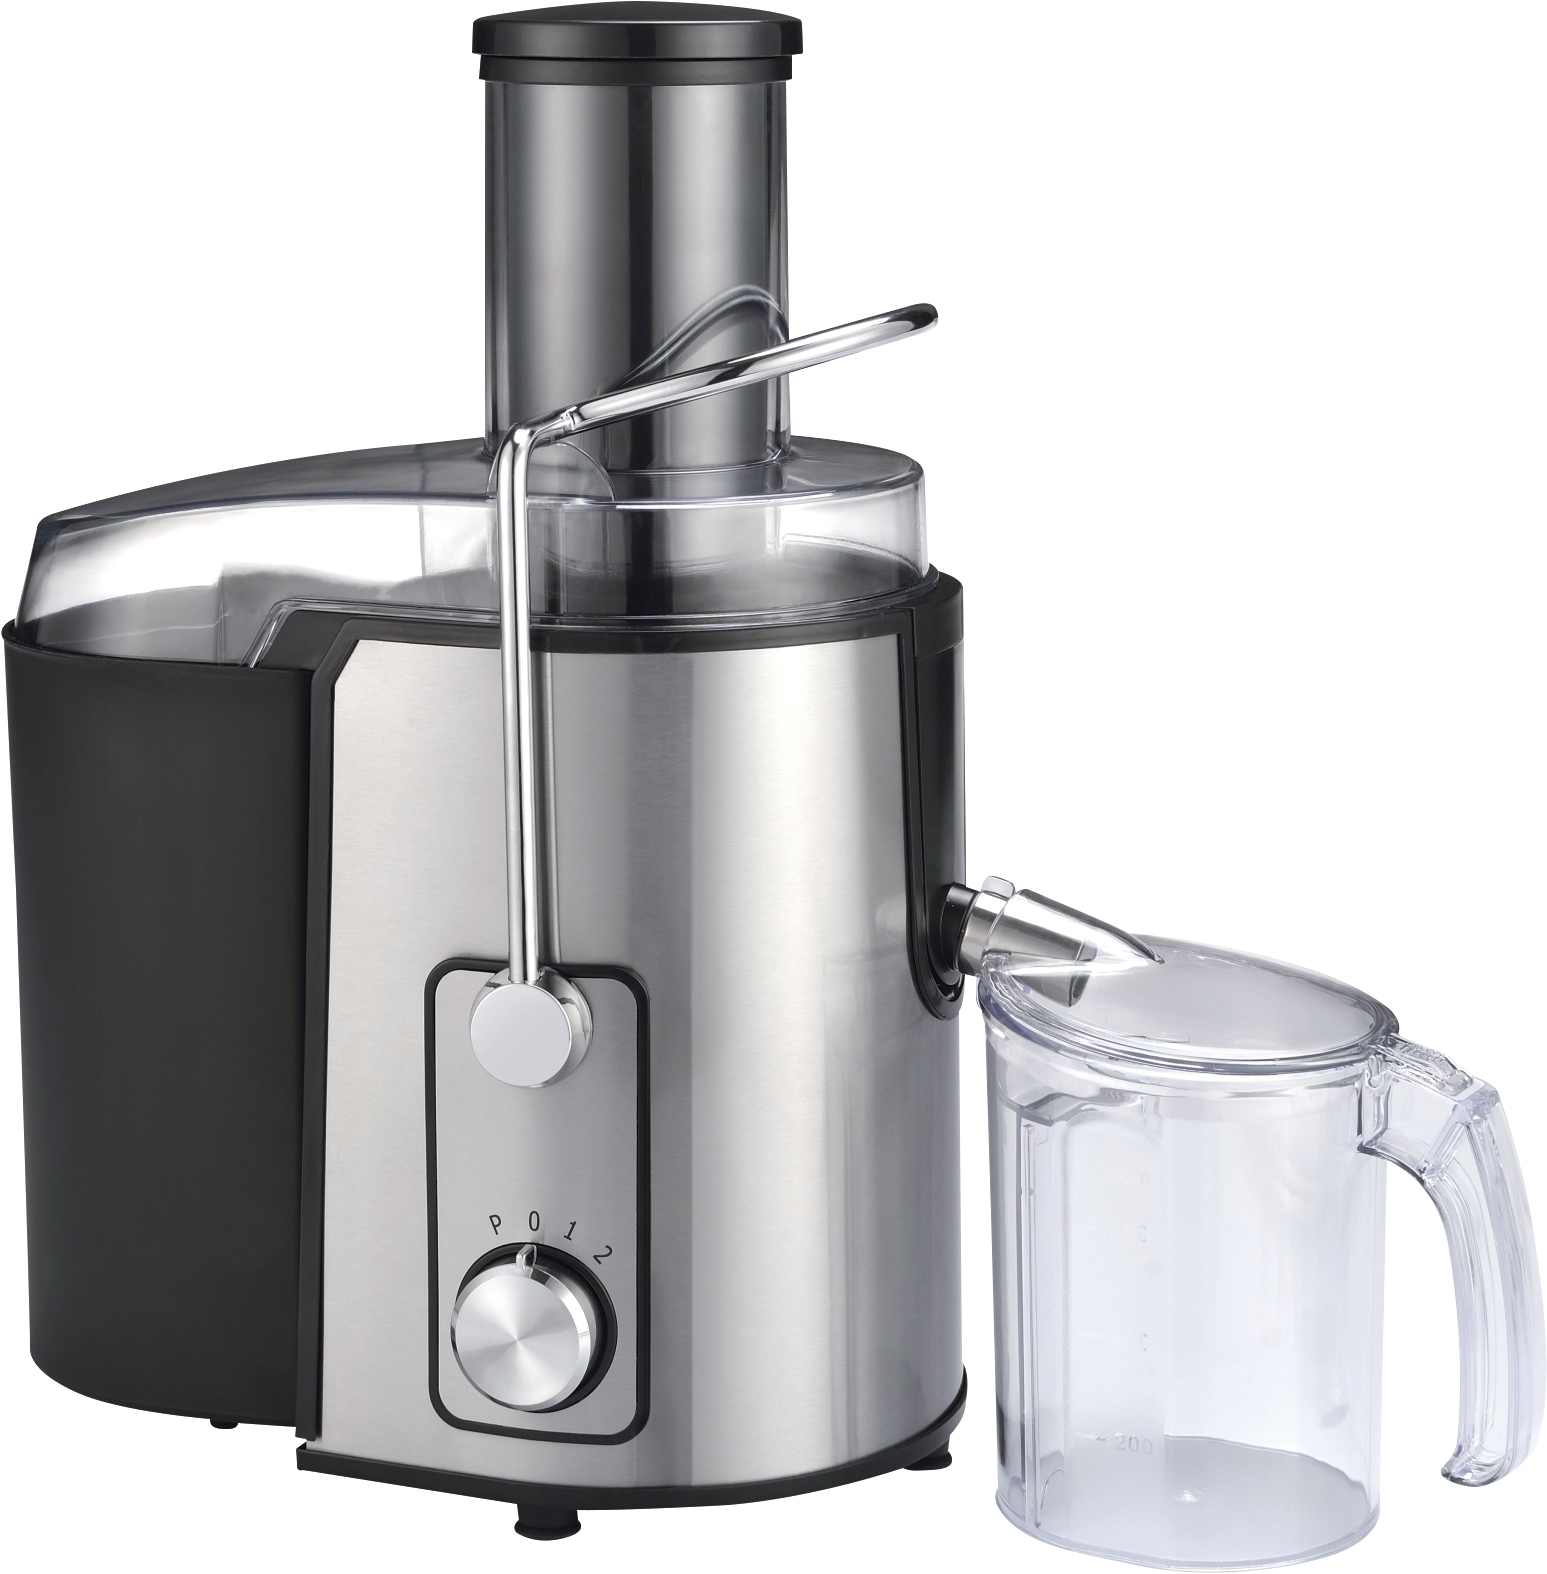 Multifunctional juicer extractor